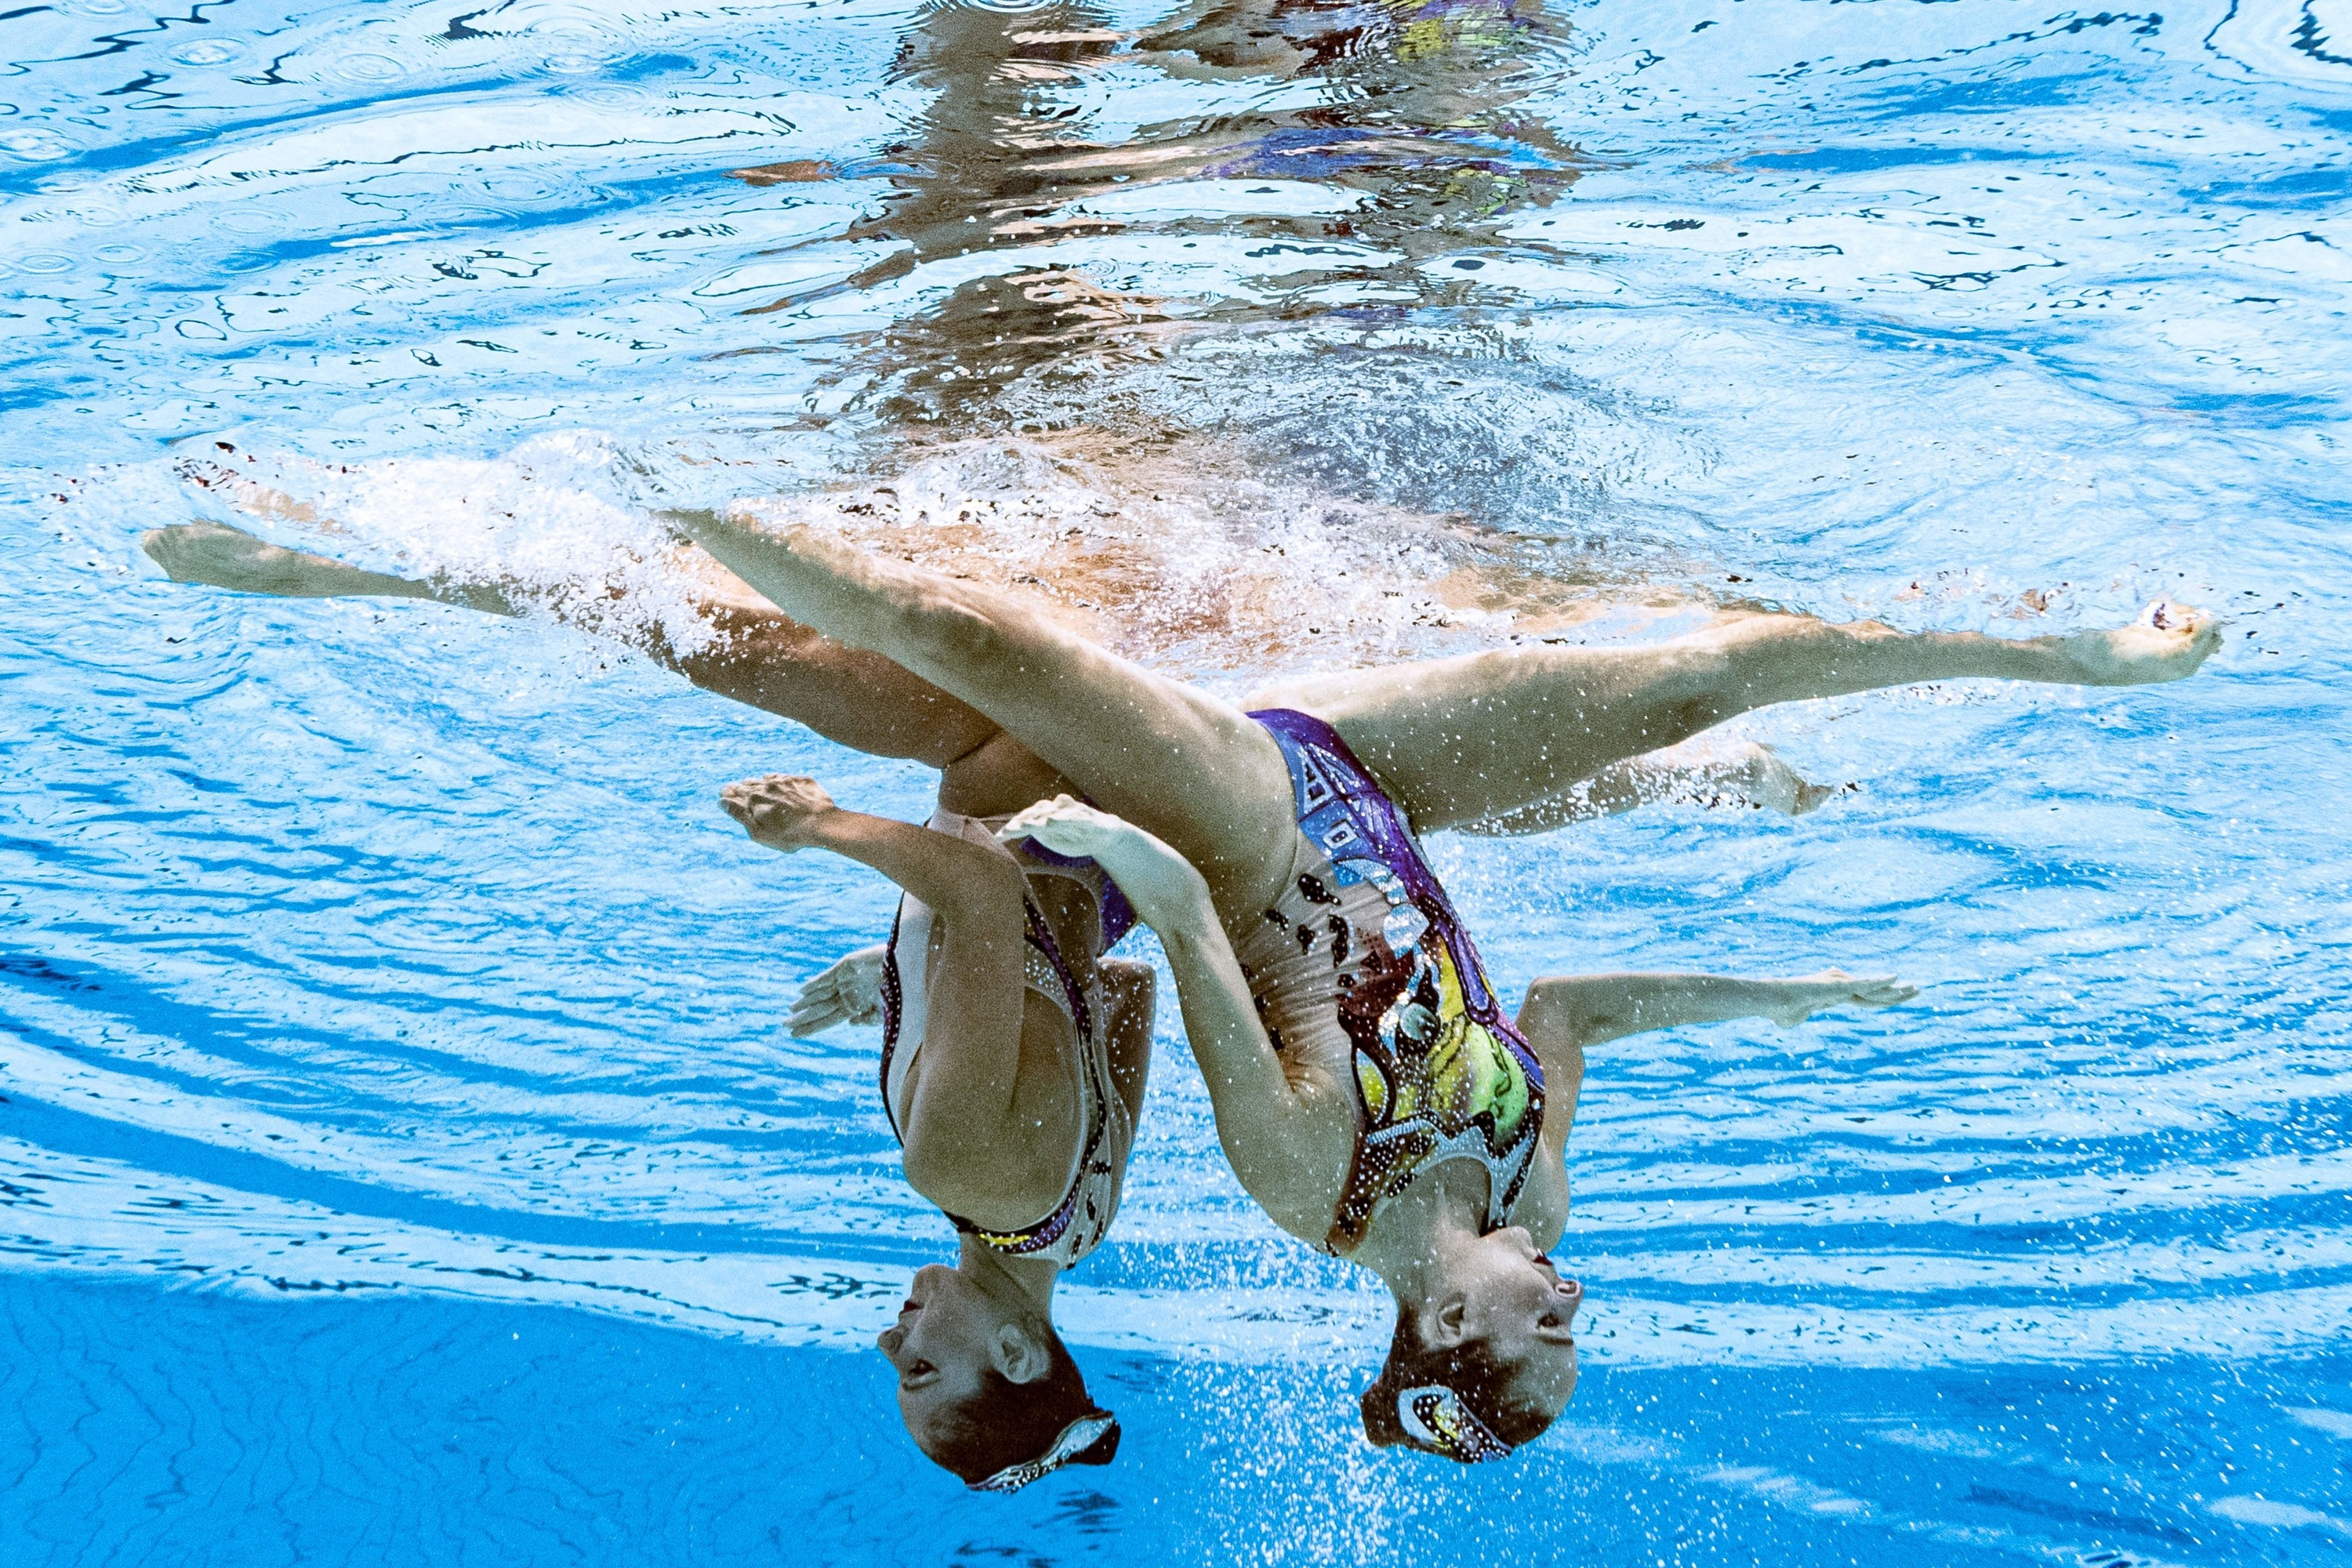 Two women swimmers are upside-down and underwater in a pool